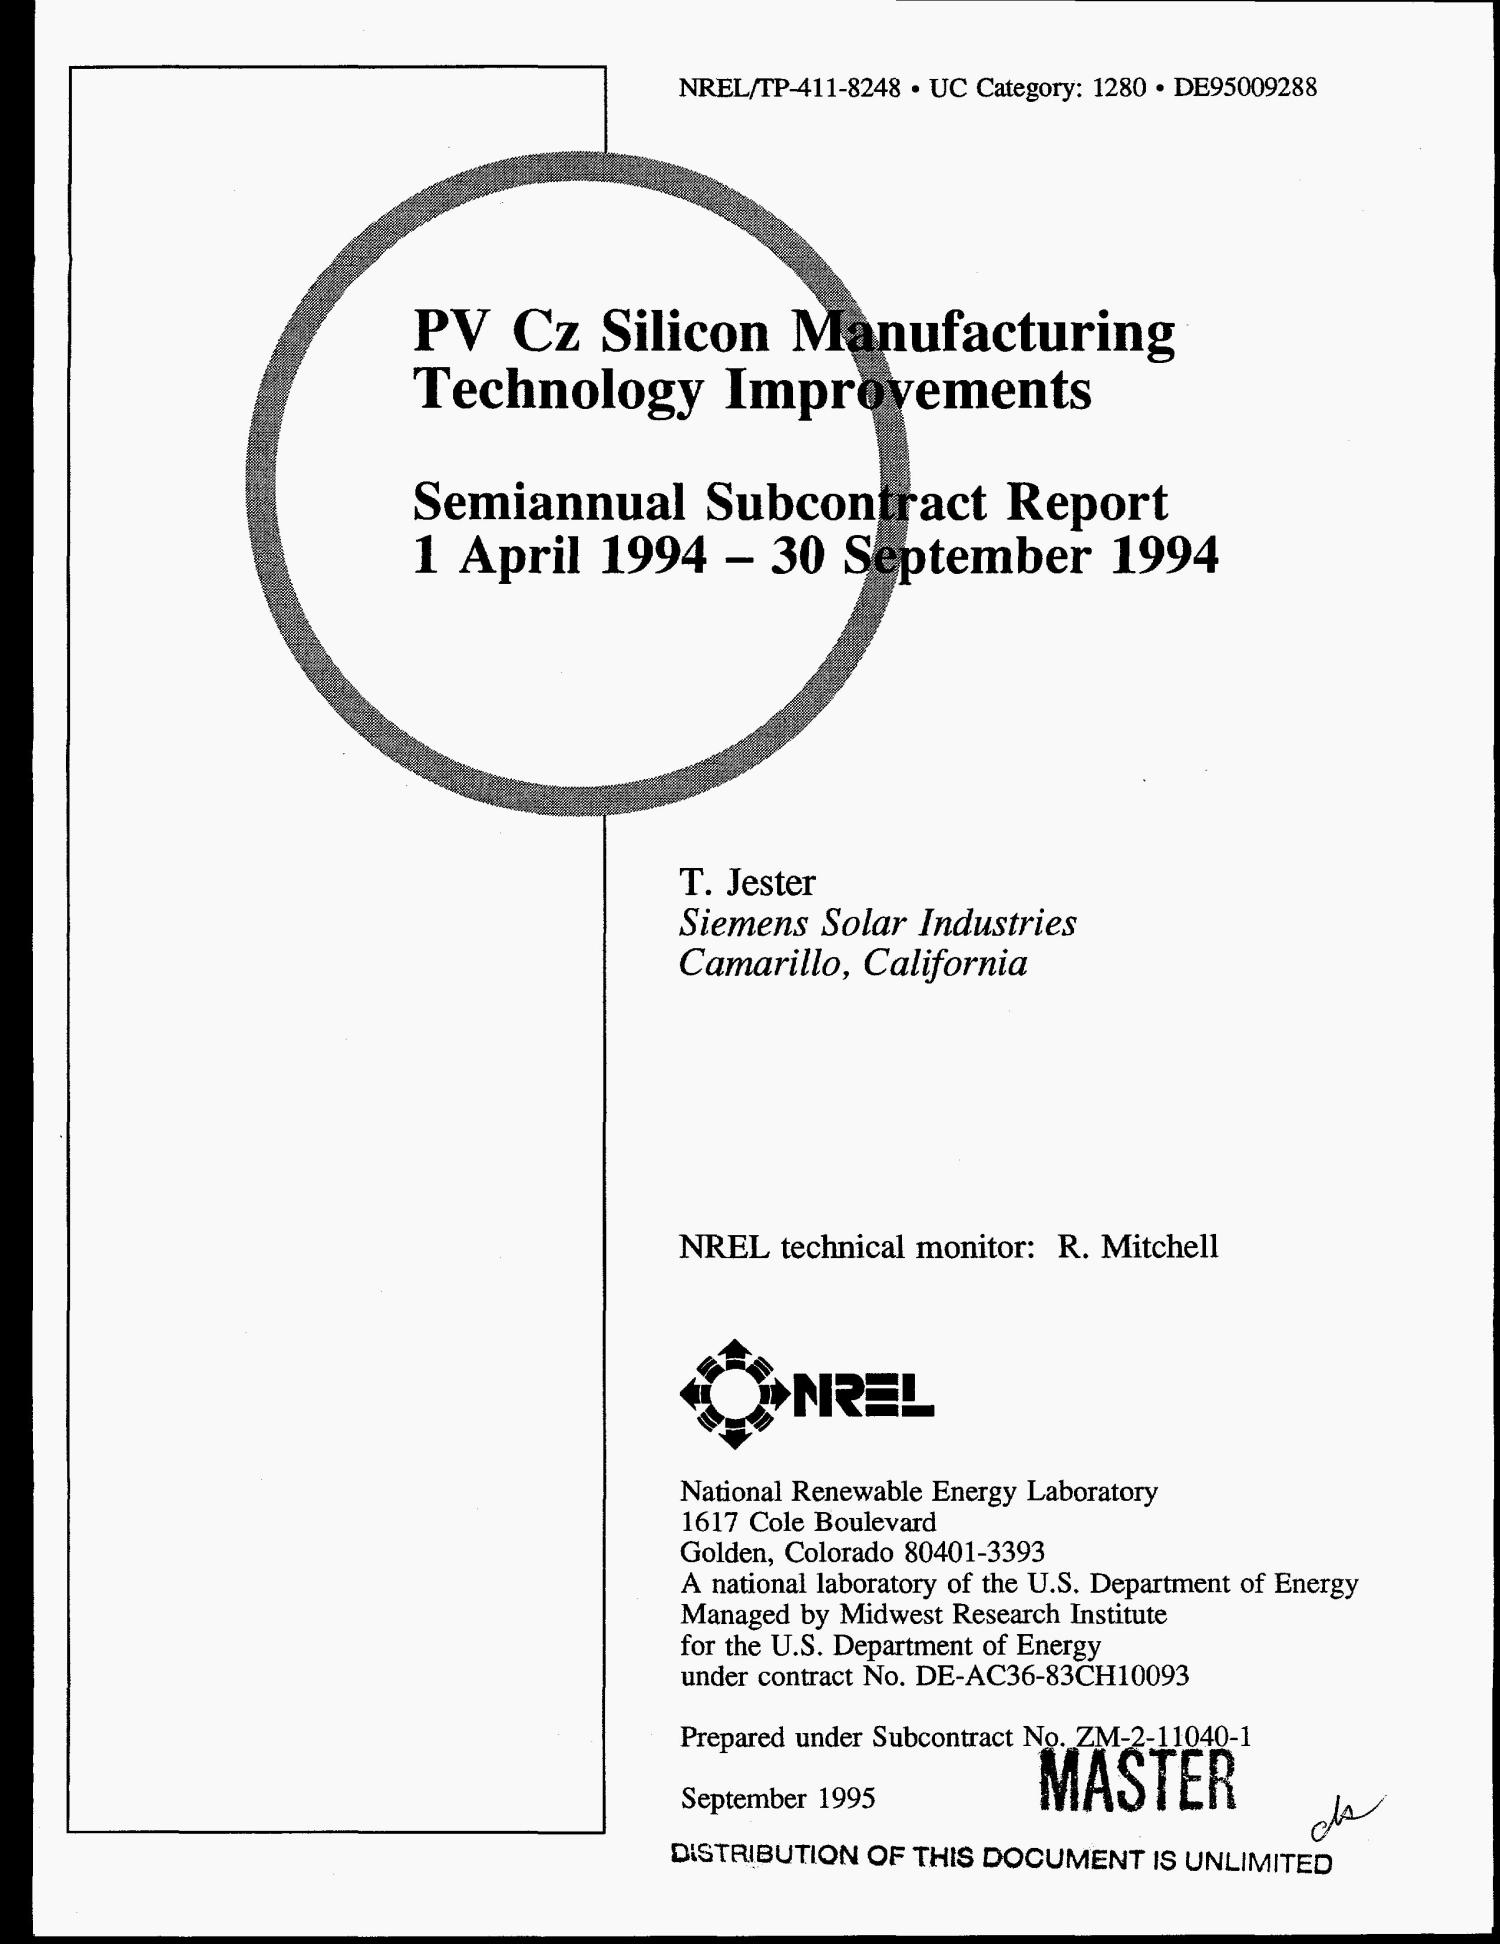 PV Cz silicon manufacturing technology improvements. Semiannual subcontract report, 1 April 1994--30 September 1994                                                                                                      [Sequence #]: 1 of 18